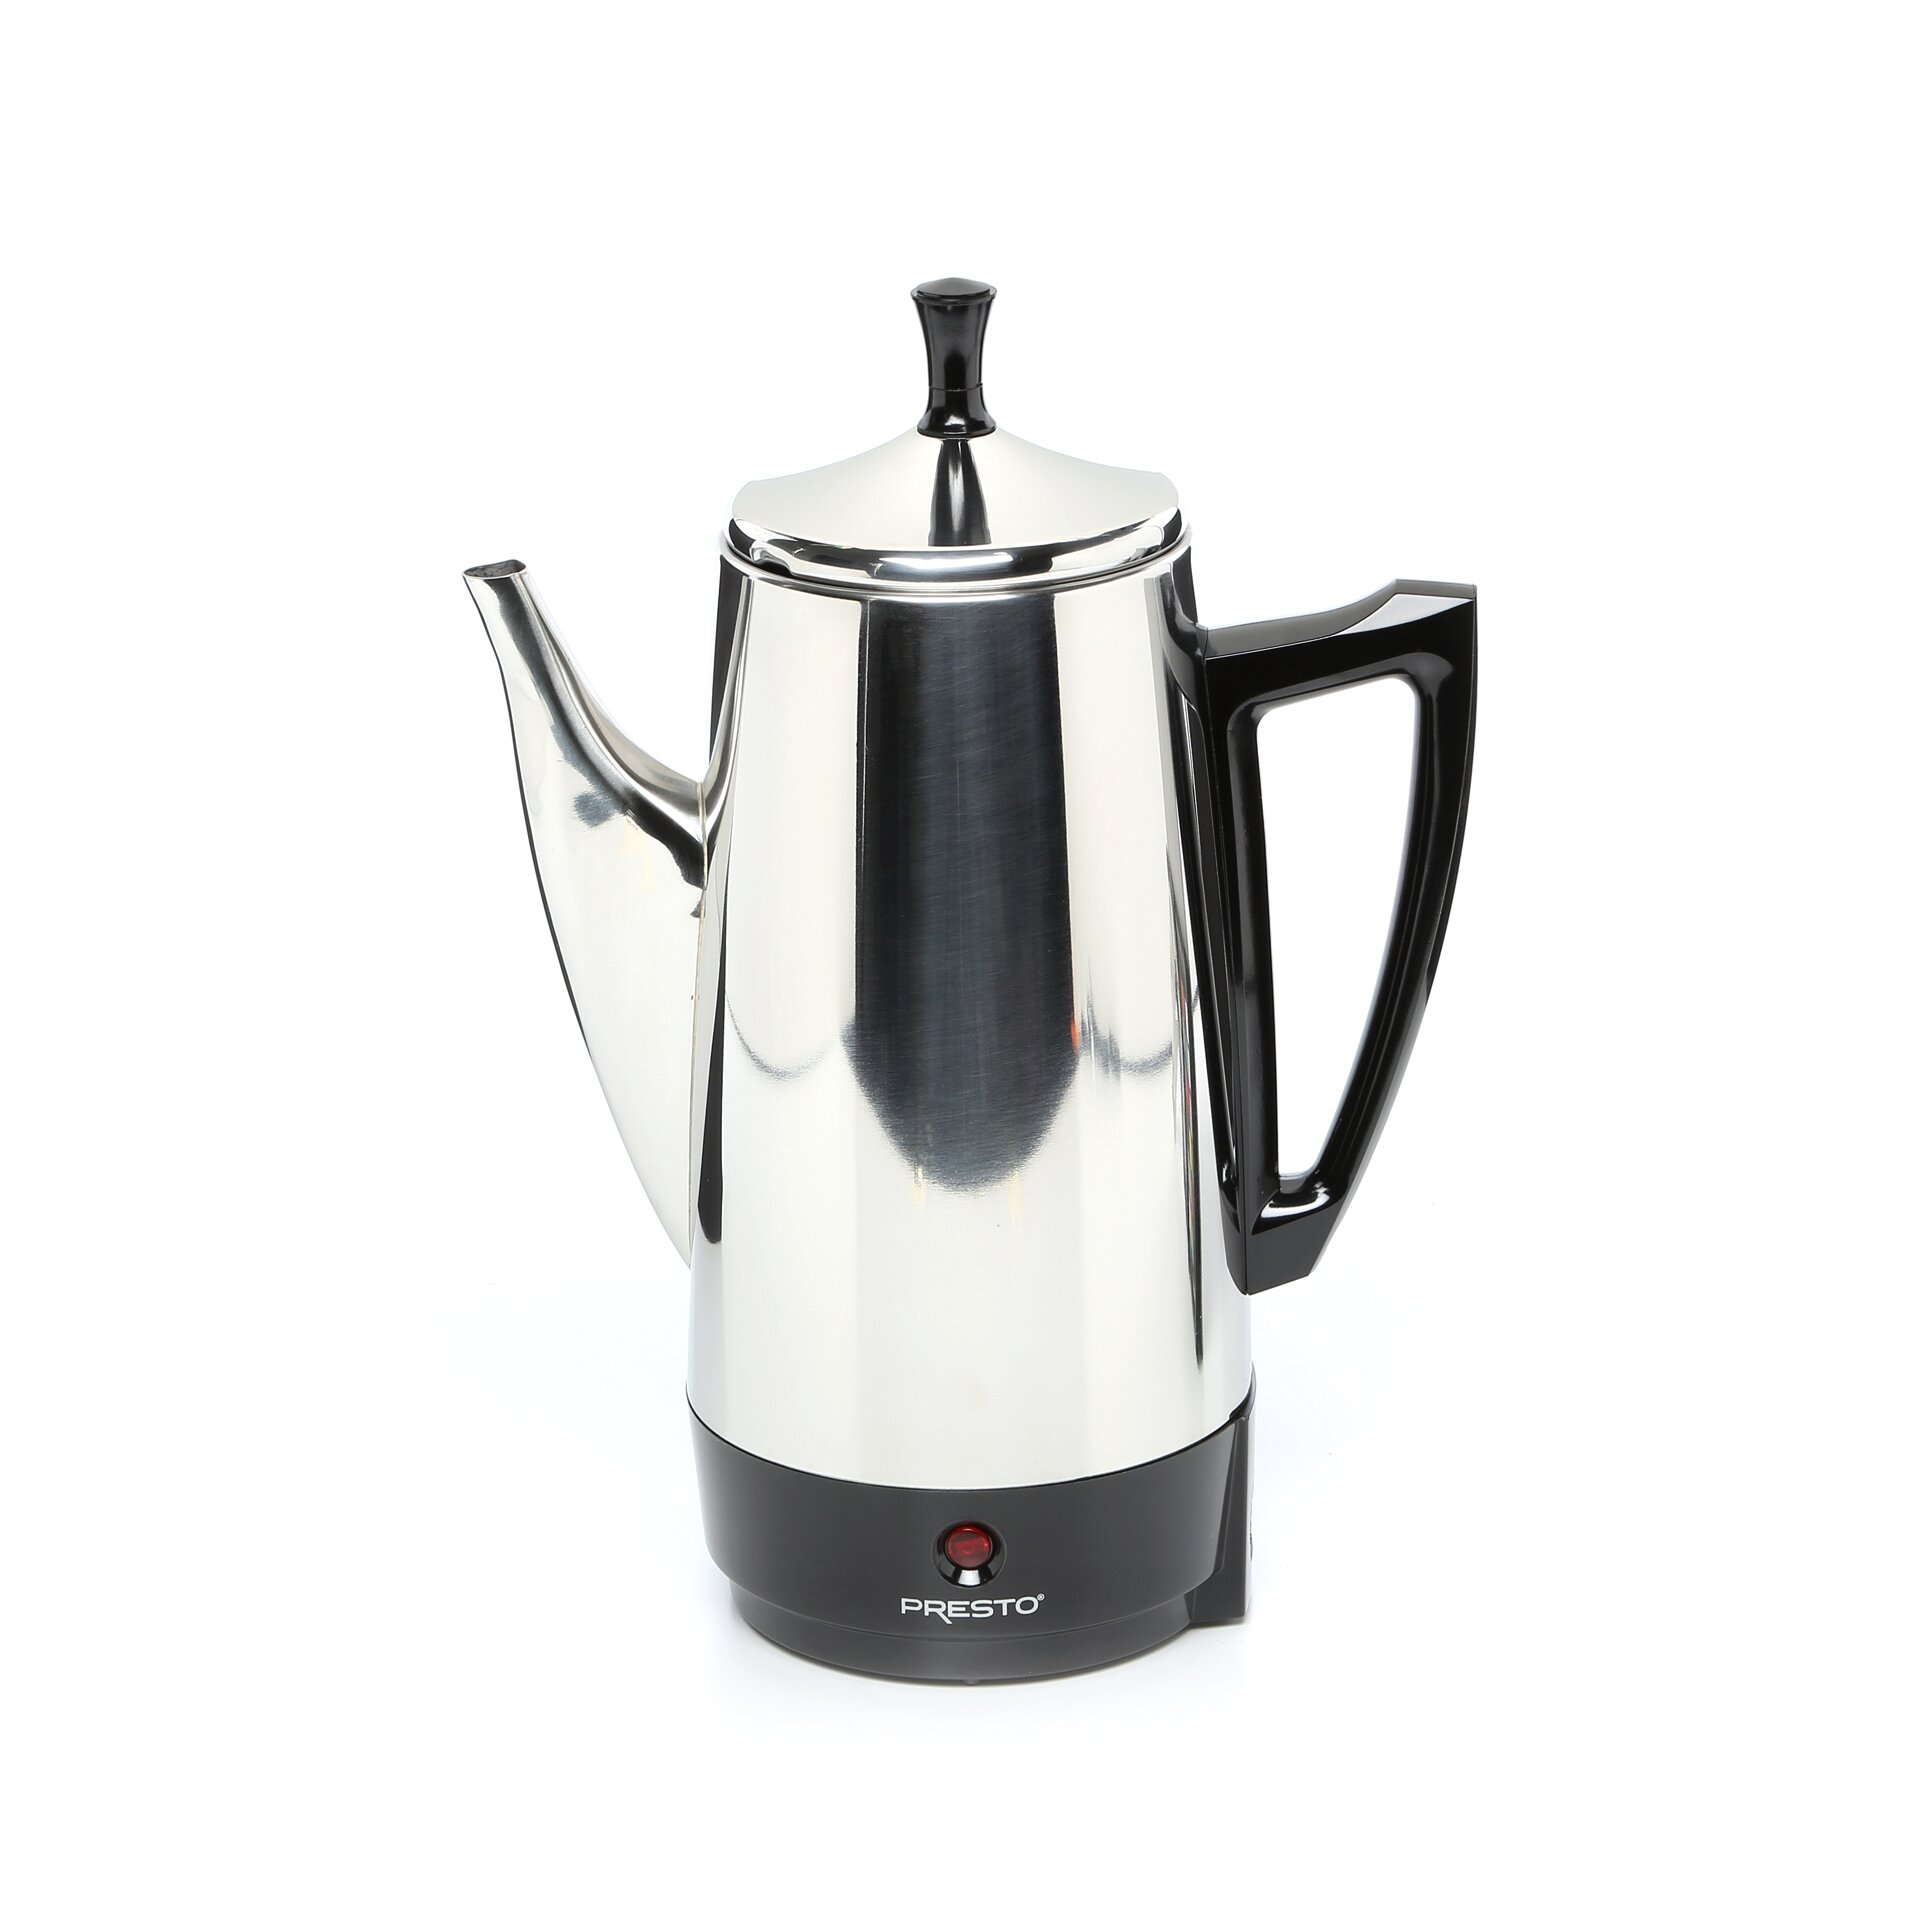 Coffee Maker Percolator Reviews : Presto Coffee Percolator Maker & Reviews Wayfair